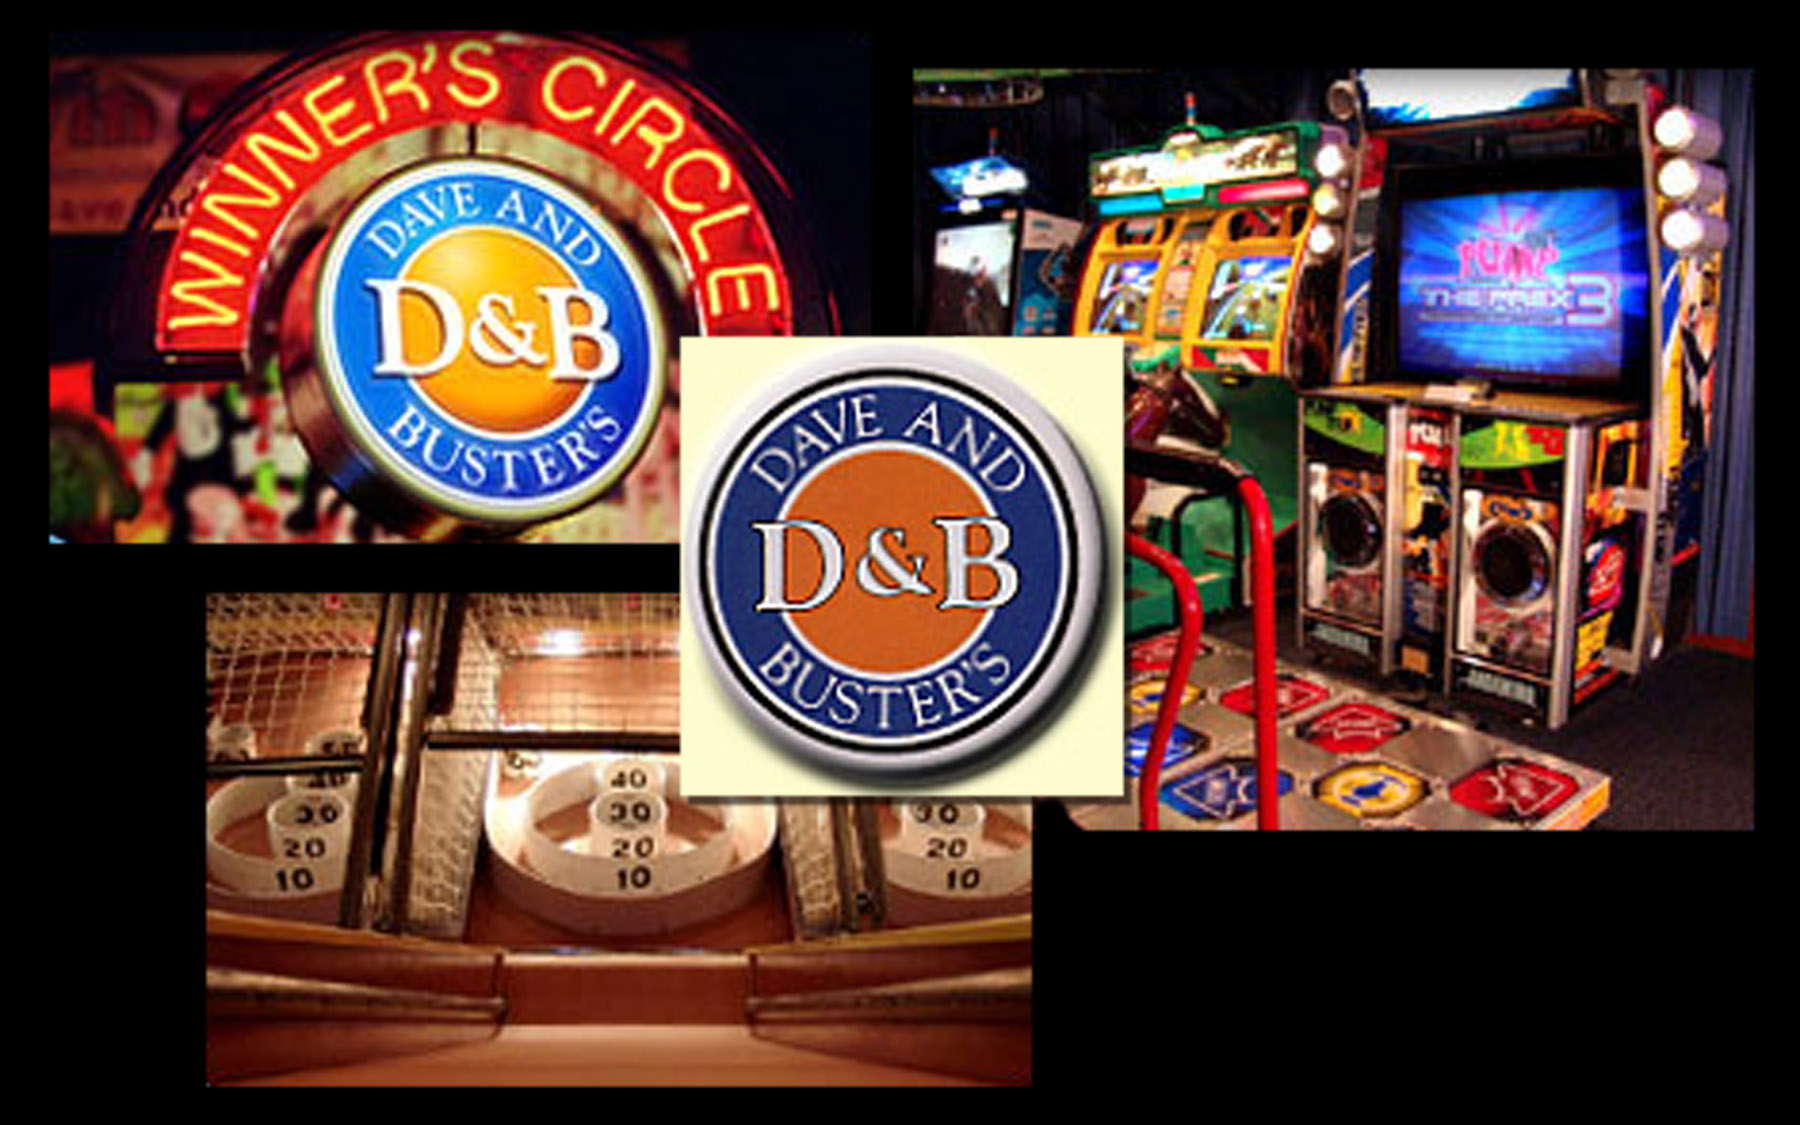 Dave & Buster's in Dallas, TX